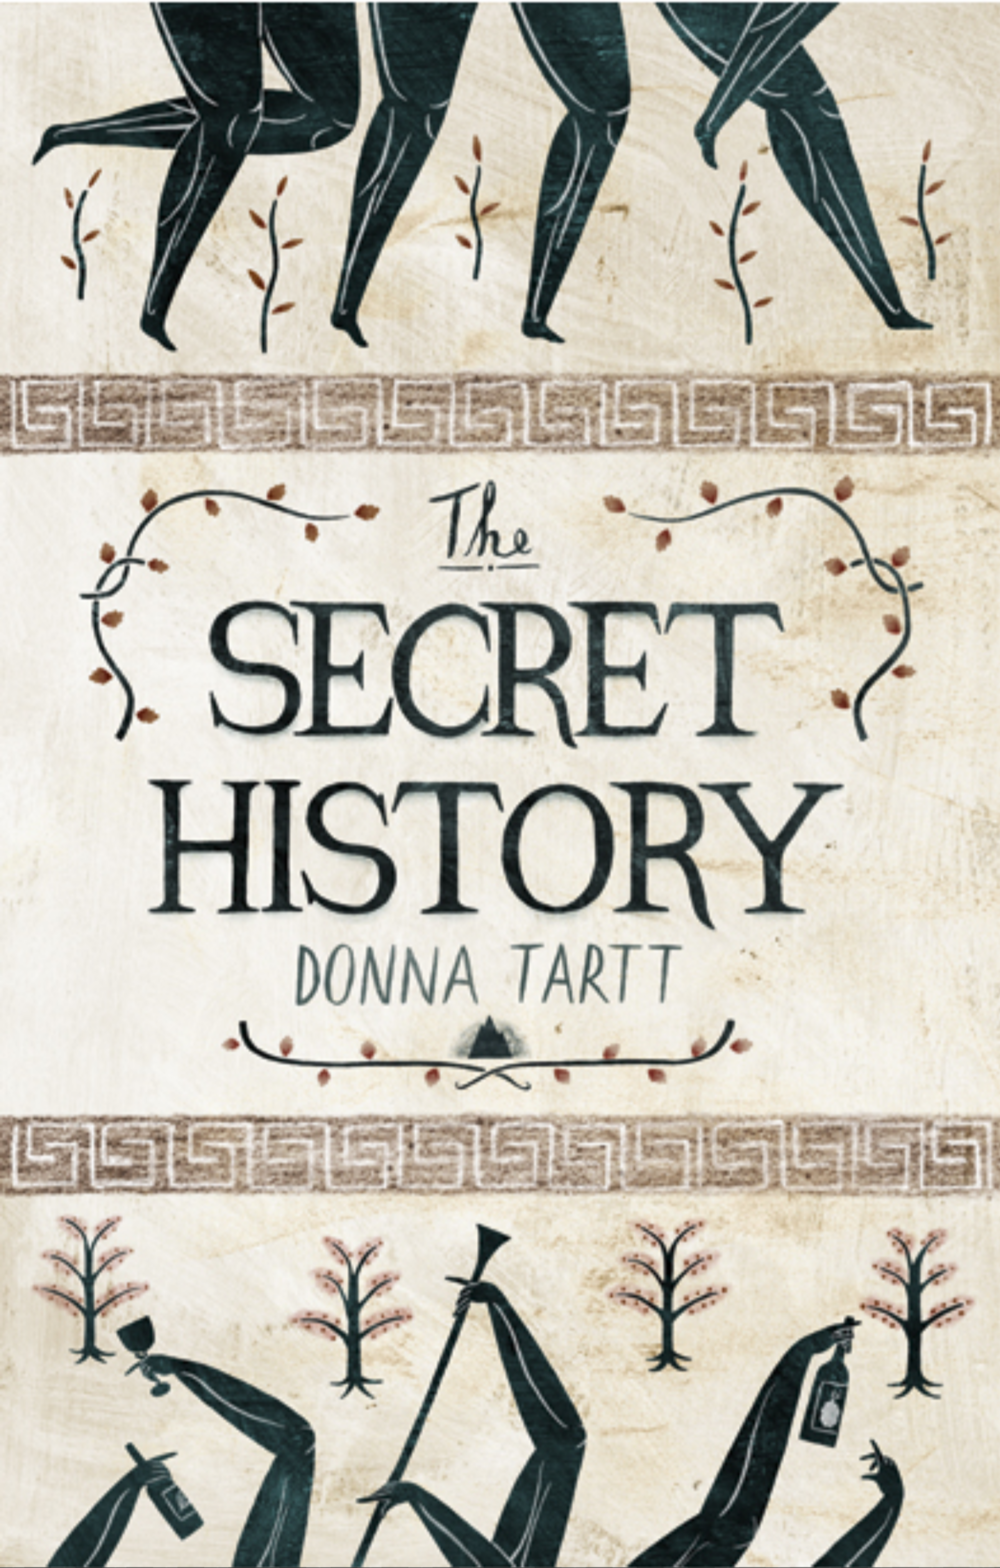 the secret history  by donna tartt   Published by Alfred A. Knopf, september 1922   Genres: adult Fiction NoveL, Thriller, suspense, mystery   Pages:   544   Format:   Paperback   Source:   Purchased   Pacing: {4/5}